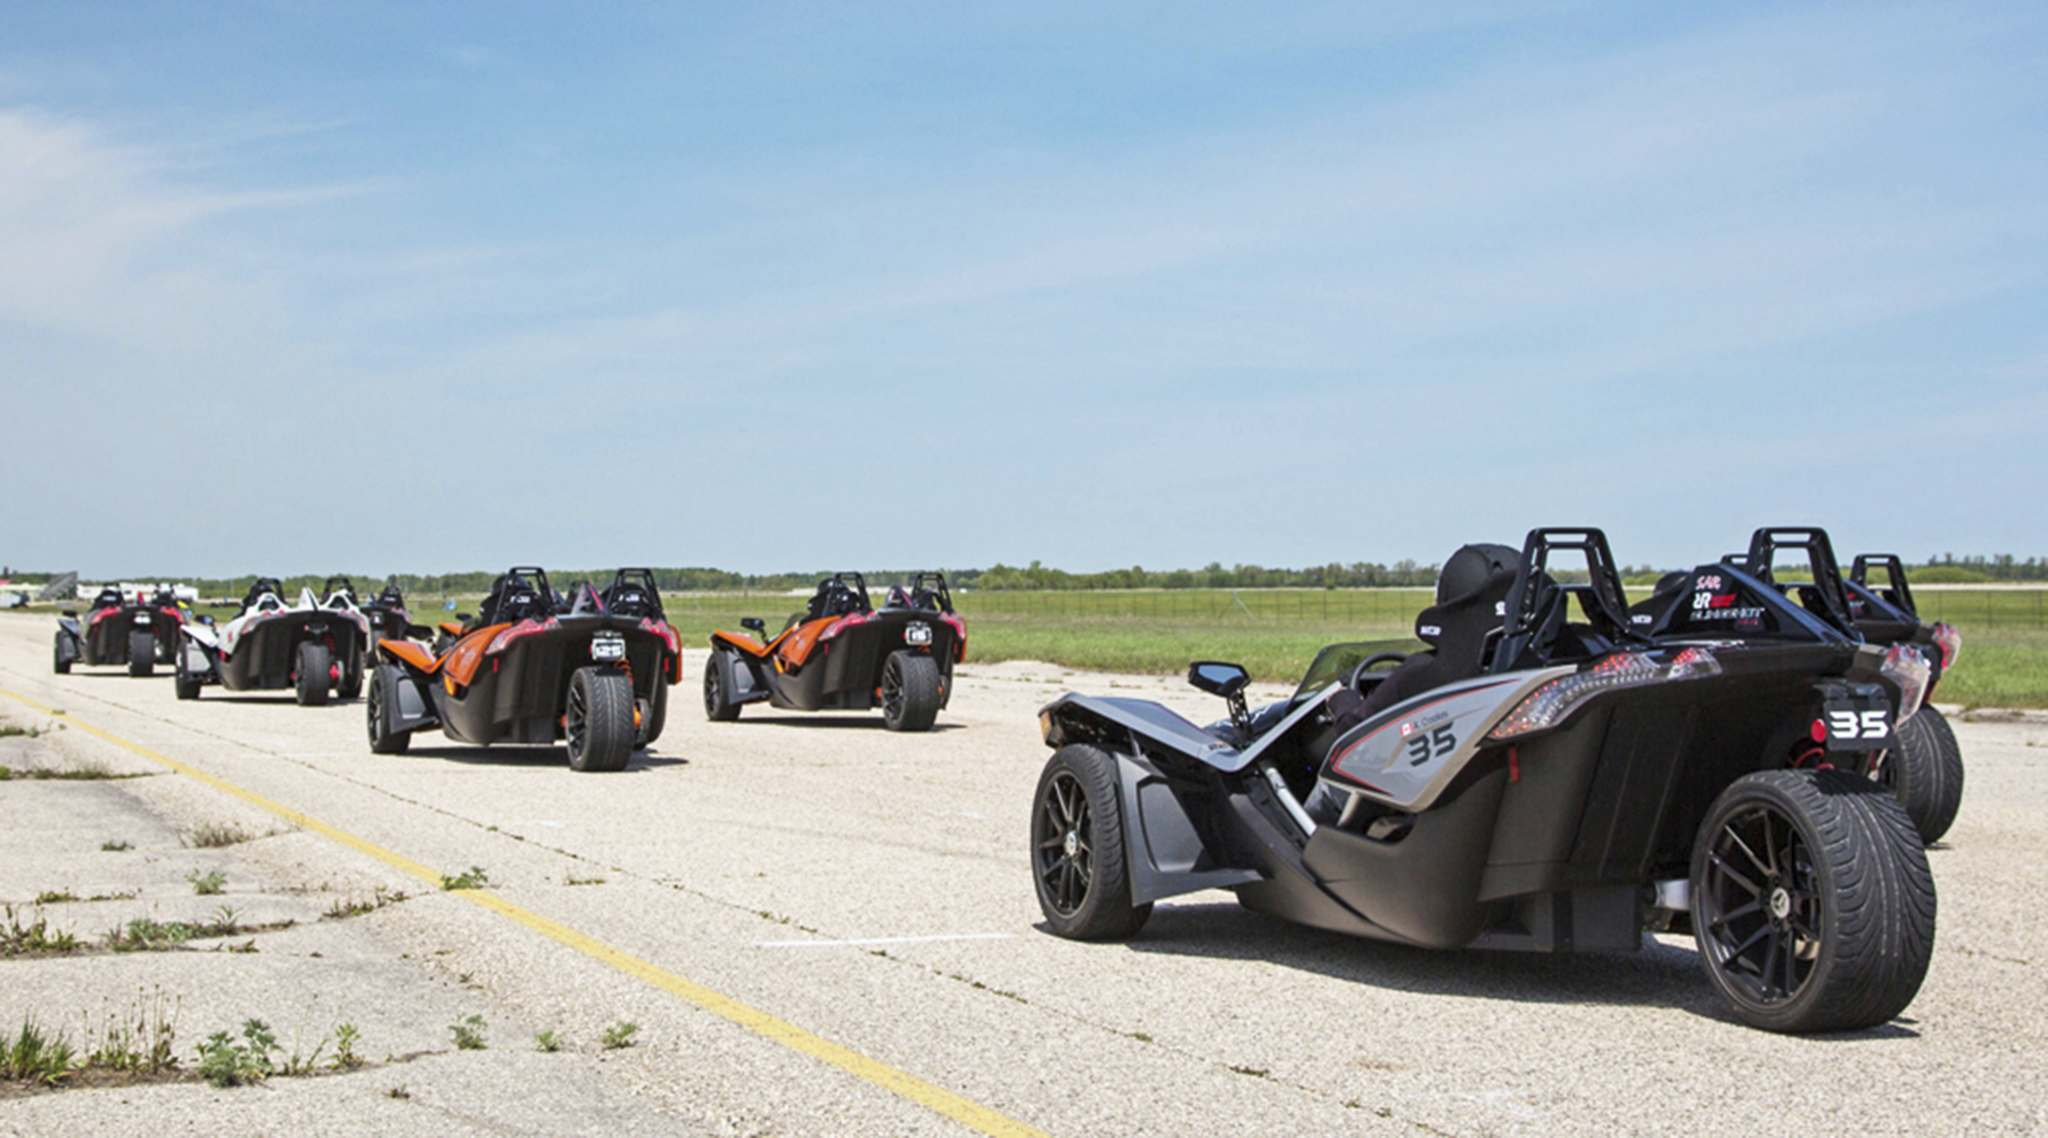 SuppliedThe Polaris Slingshot is a three-wheeled vehicle with a 2.4-L inline four-cylinder engine. Drivers raced Slingshots against one another this summer in the inaugural Slingshot Racing Cup.